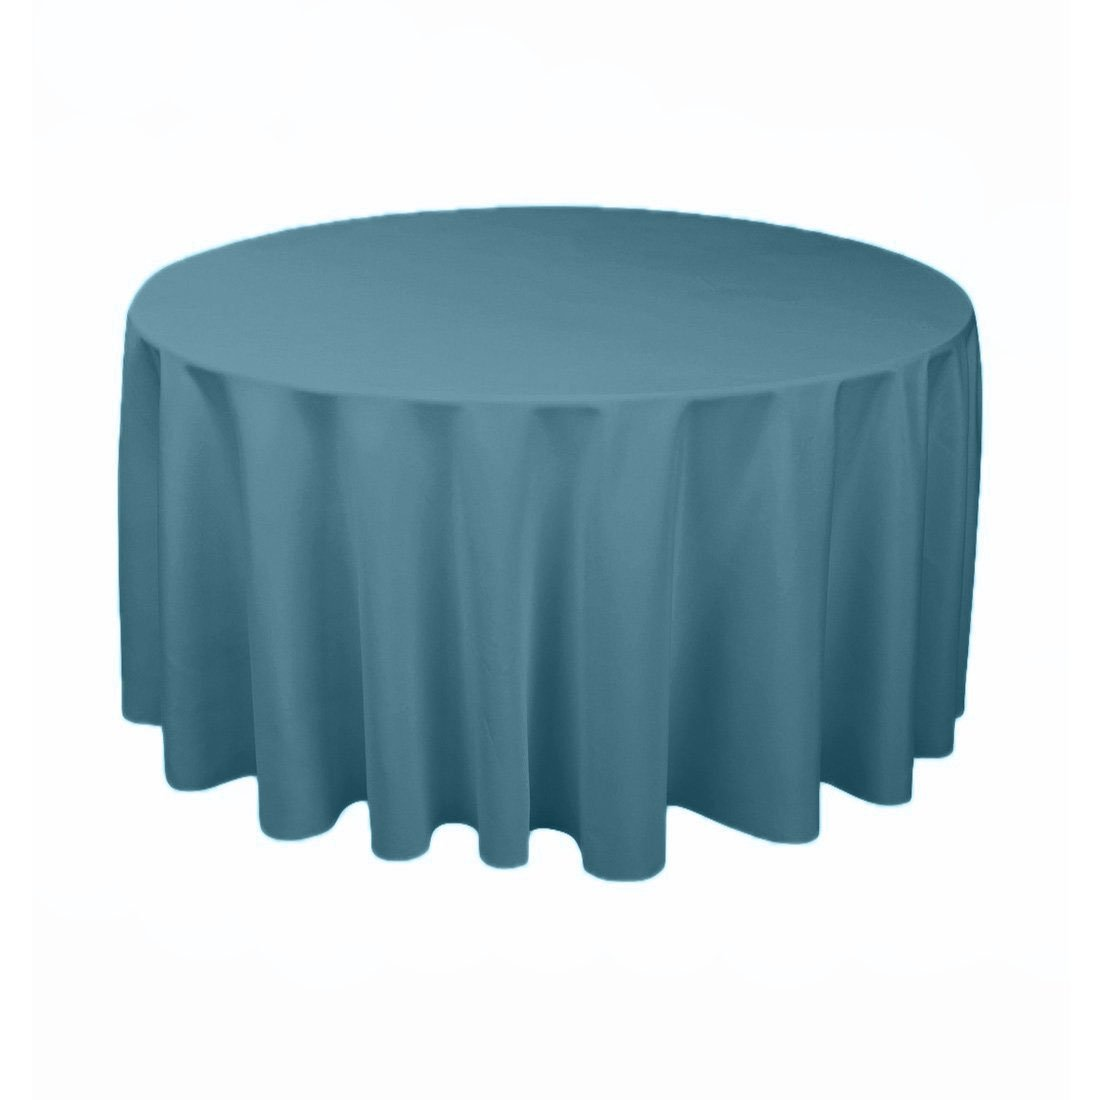 Tablecloth Polyester Round 108 Inch Steel Blue By Broward Linens by Broward Super Store